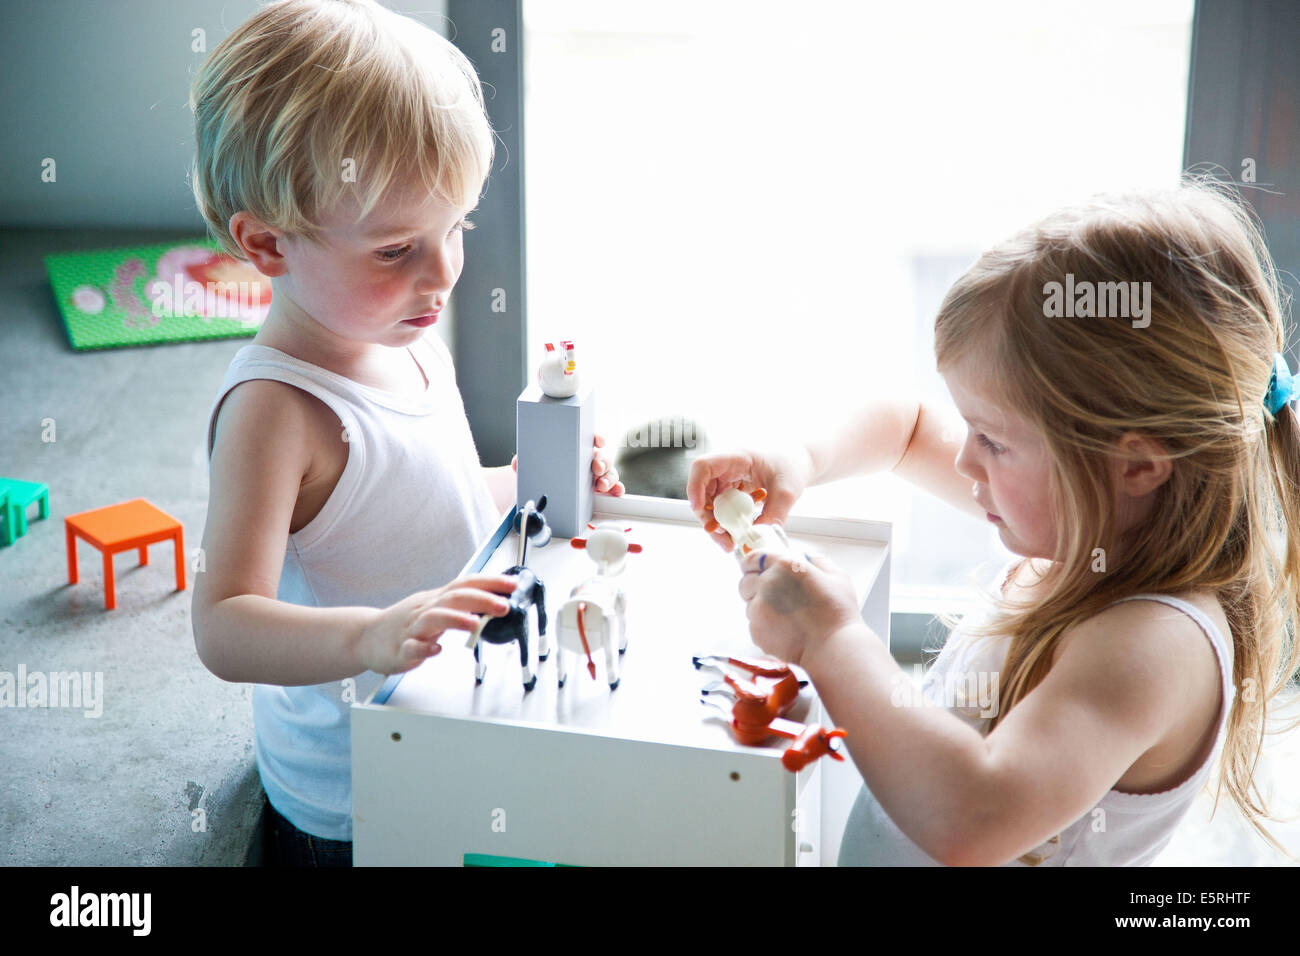 Brother and sister playing with figurines. - Stock Image